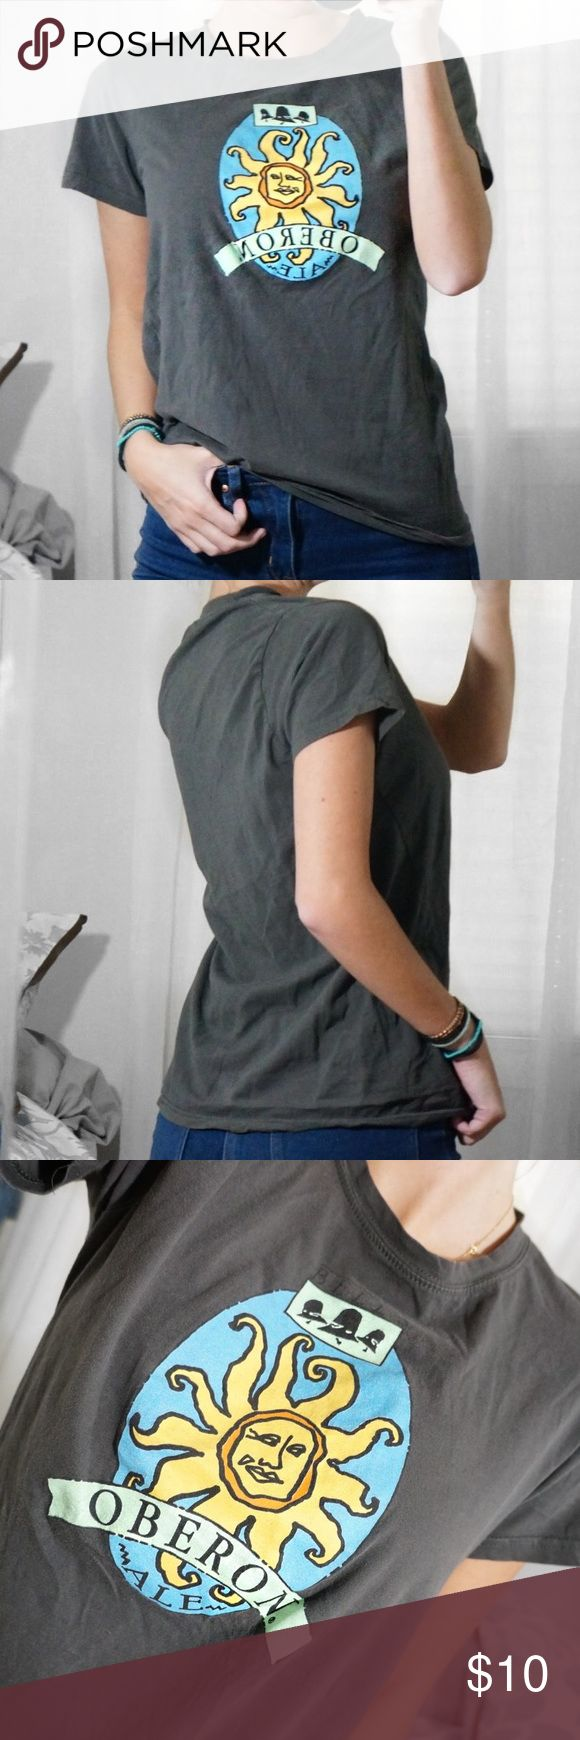 """Gray Oberon Beer Fitted Tee T-Shirt Serve up a stylishly simple look while supporting your favorite beer with this Gray Oberon Beer Fitted Tee! Ultra soft and lightweight stretch knit shapes this essential tee with a classic round neckline, short sleeves, and a relaxed yet flattering bodice. Excellent condition. Cant read the tag but fits as a size SM (could possibly fit a medium as well). I'm a size SM, 5'7"""", 32d modeling the fit. Tops"""